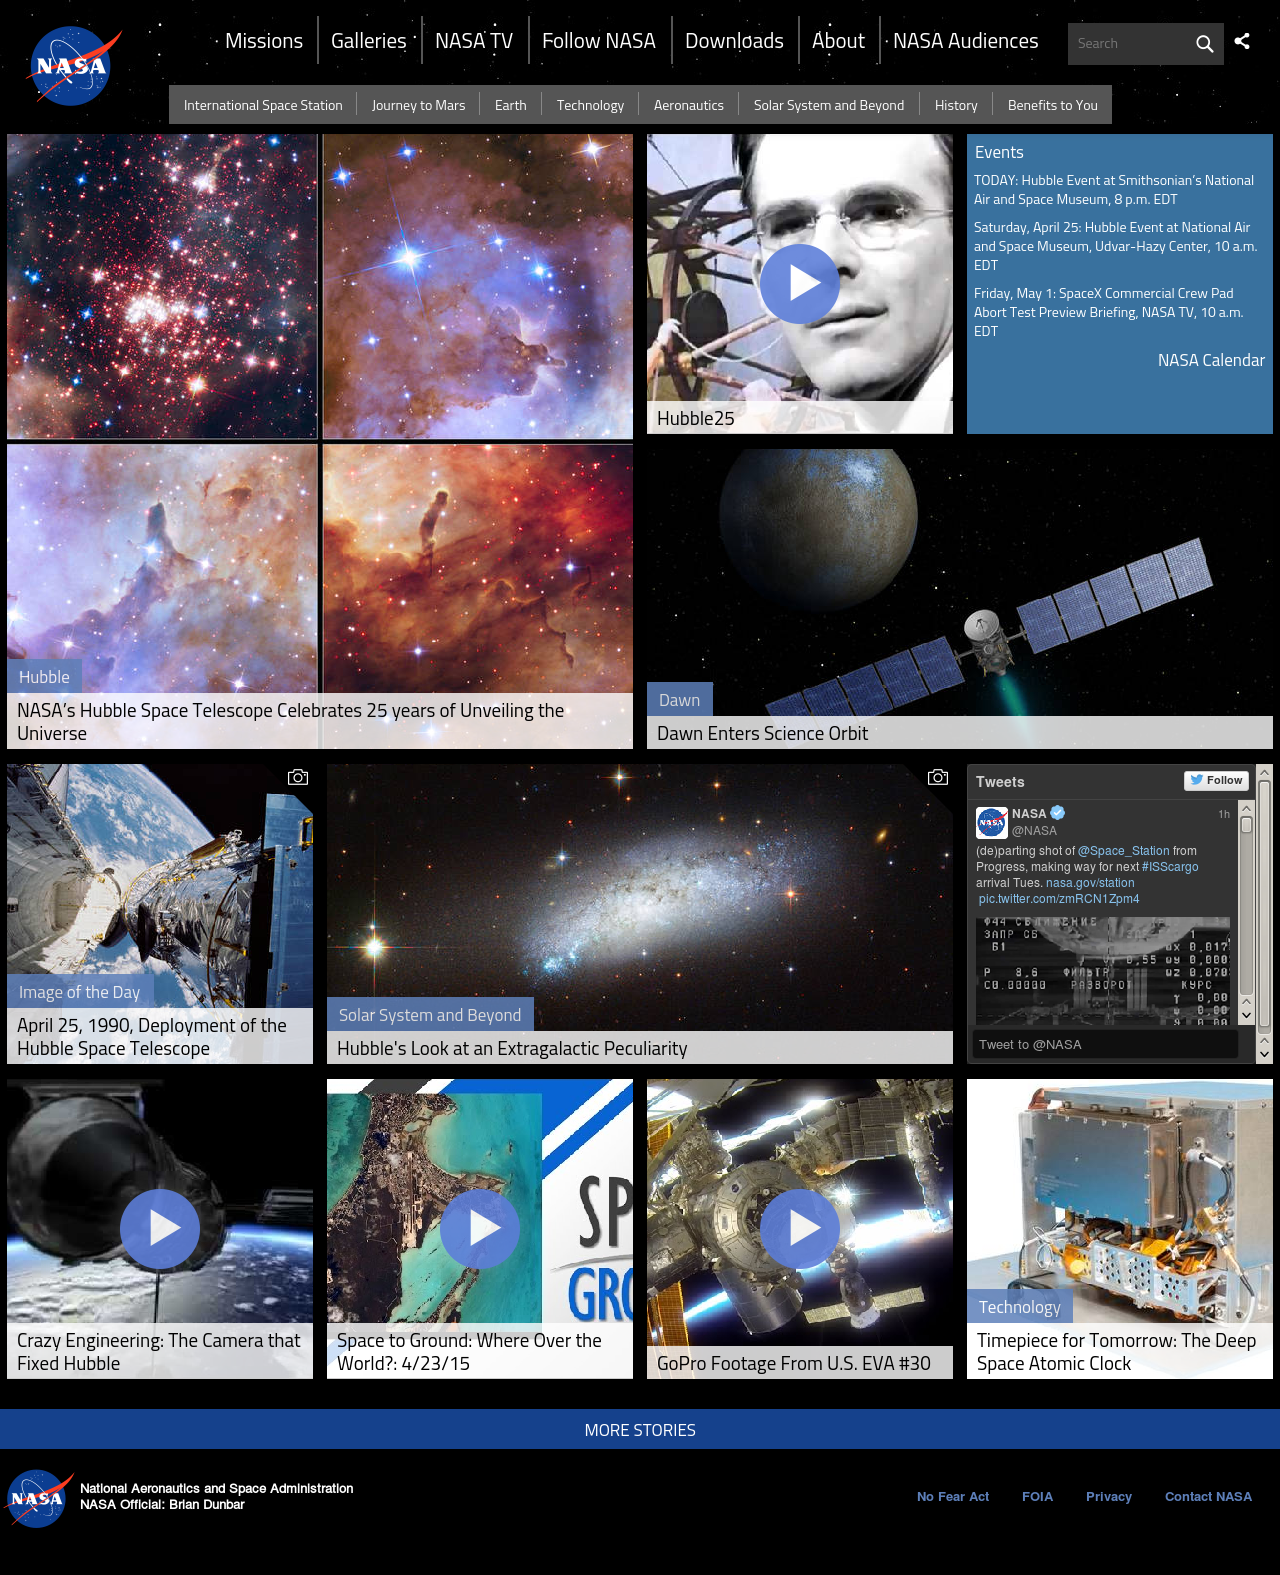 Image of NASA_Website_Homepage_-_April_25,_2015.png#: http://commons.wikimedia.org/wiki/Special:FilePath/NASA_Website_Homepage_-_April_25,_2015.png